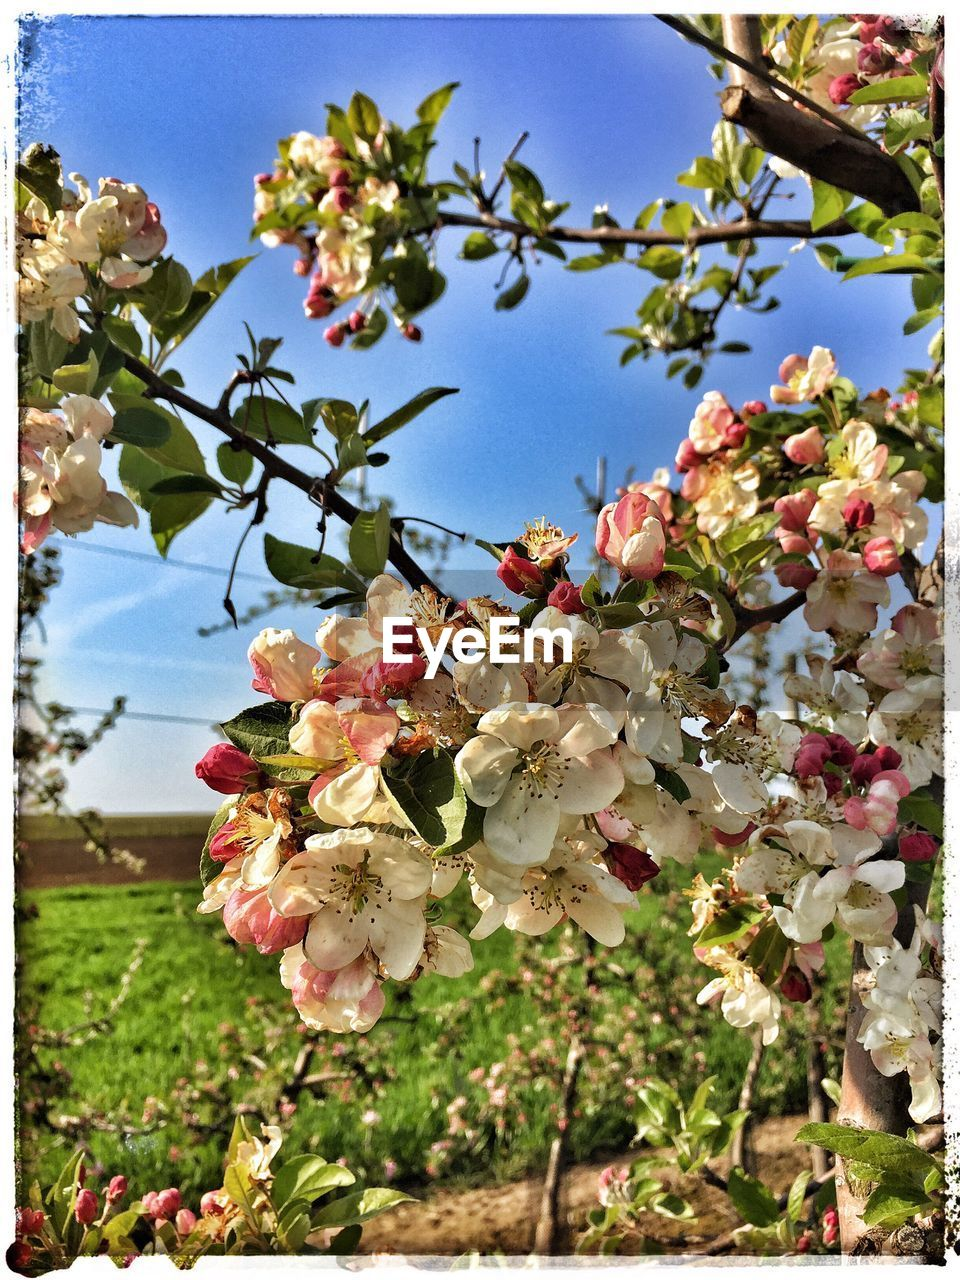 flower, growth, beauty in nature, fragility, tree, blossom, nature, petal, freshness, apple blossom, springtime, apple tree, day, botany, branch, orchard, twig, no people, outdoors, blooming, close-up, plant, flower head, low angle view, clear sky, sky